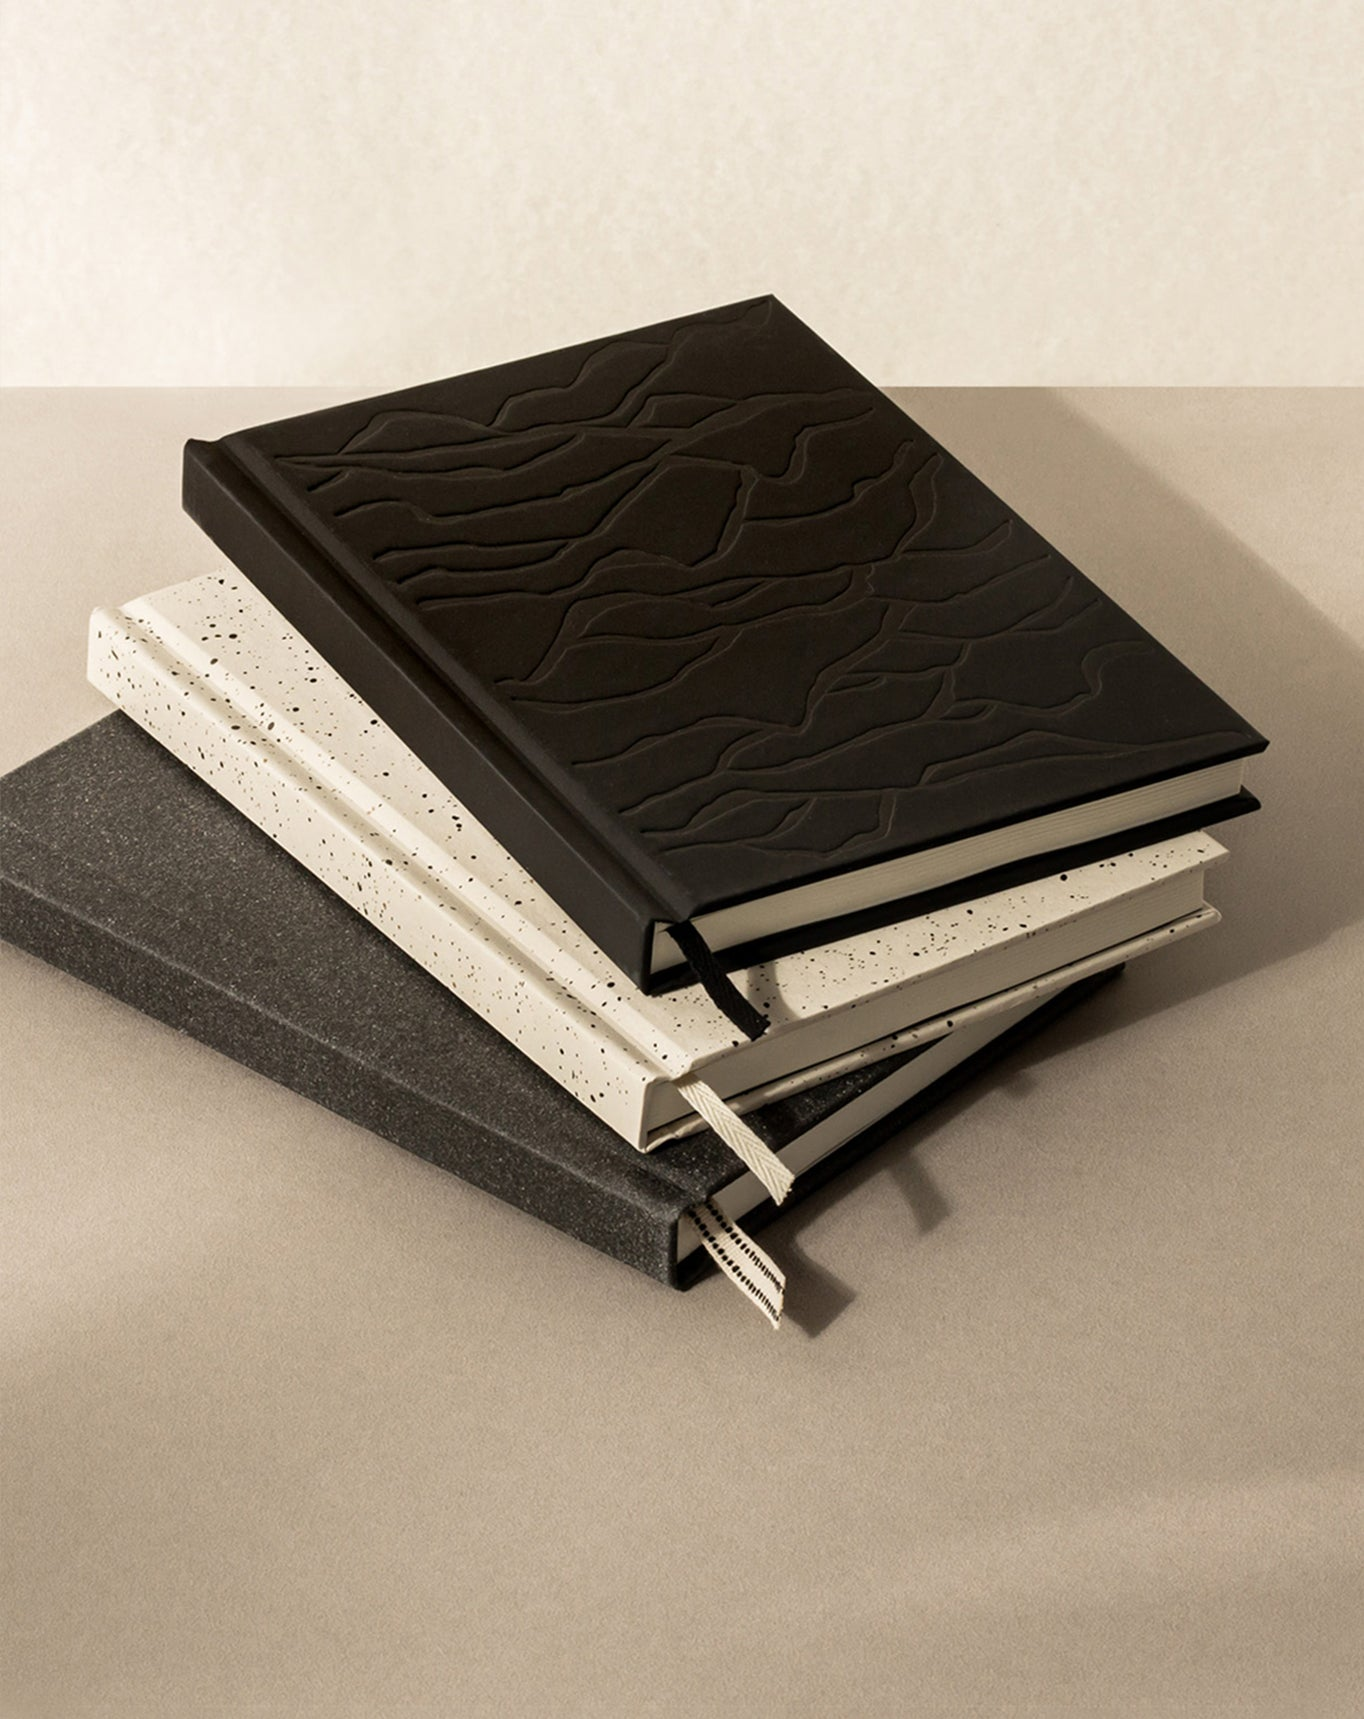 Layflat hardcover ruled A5 notebook